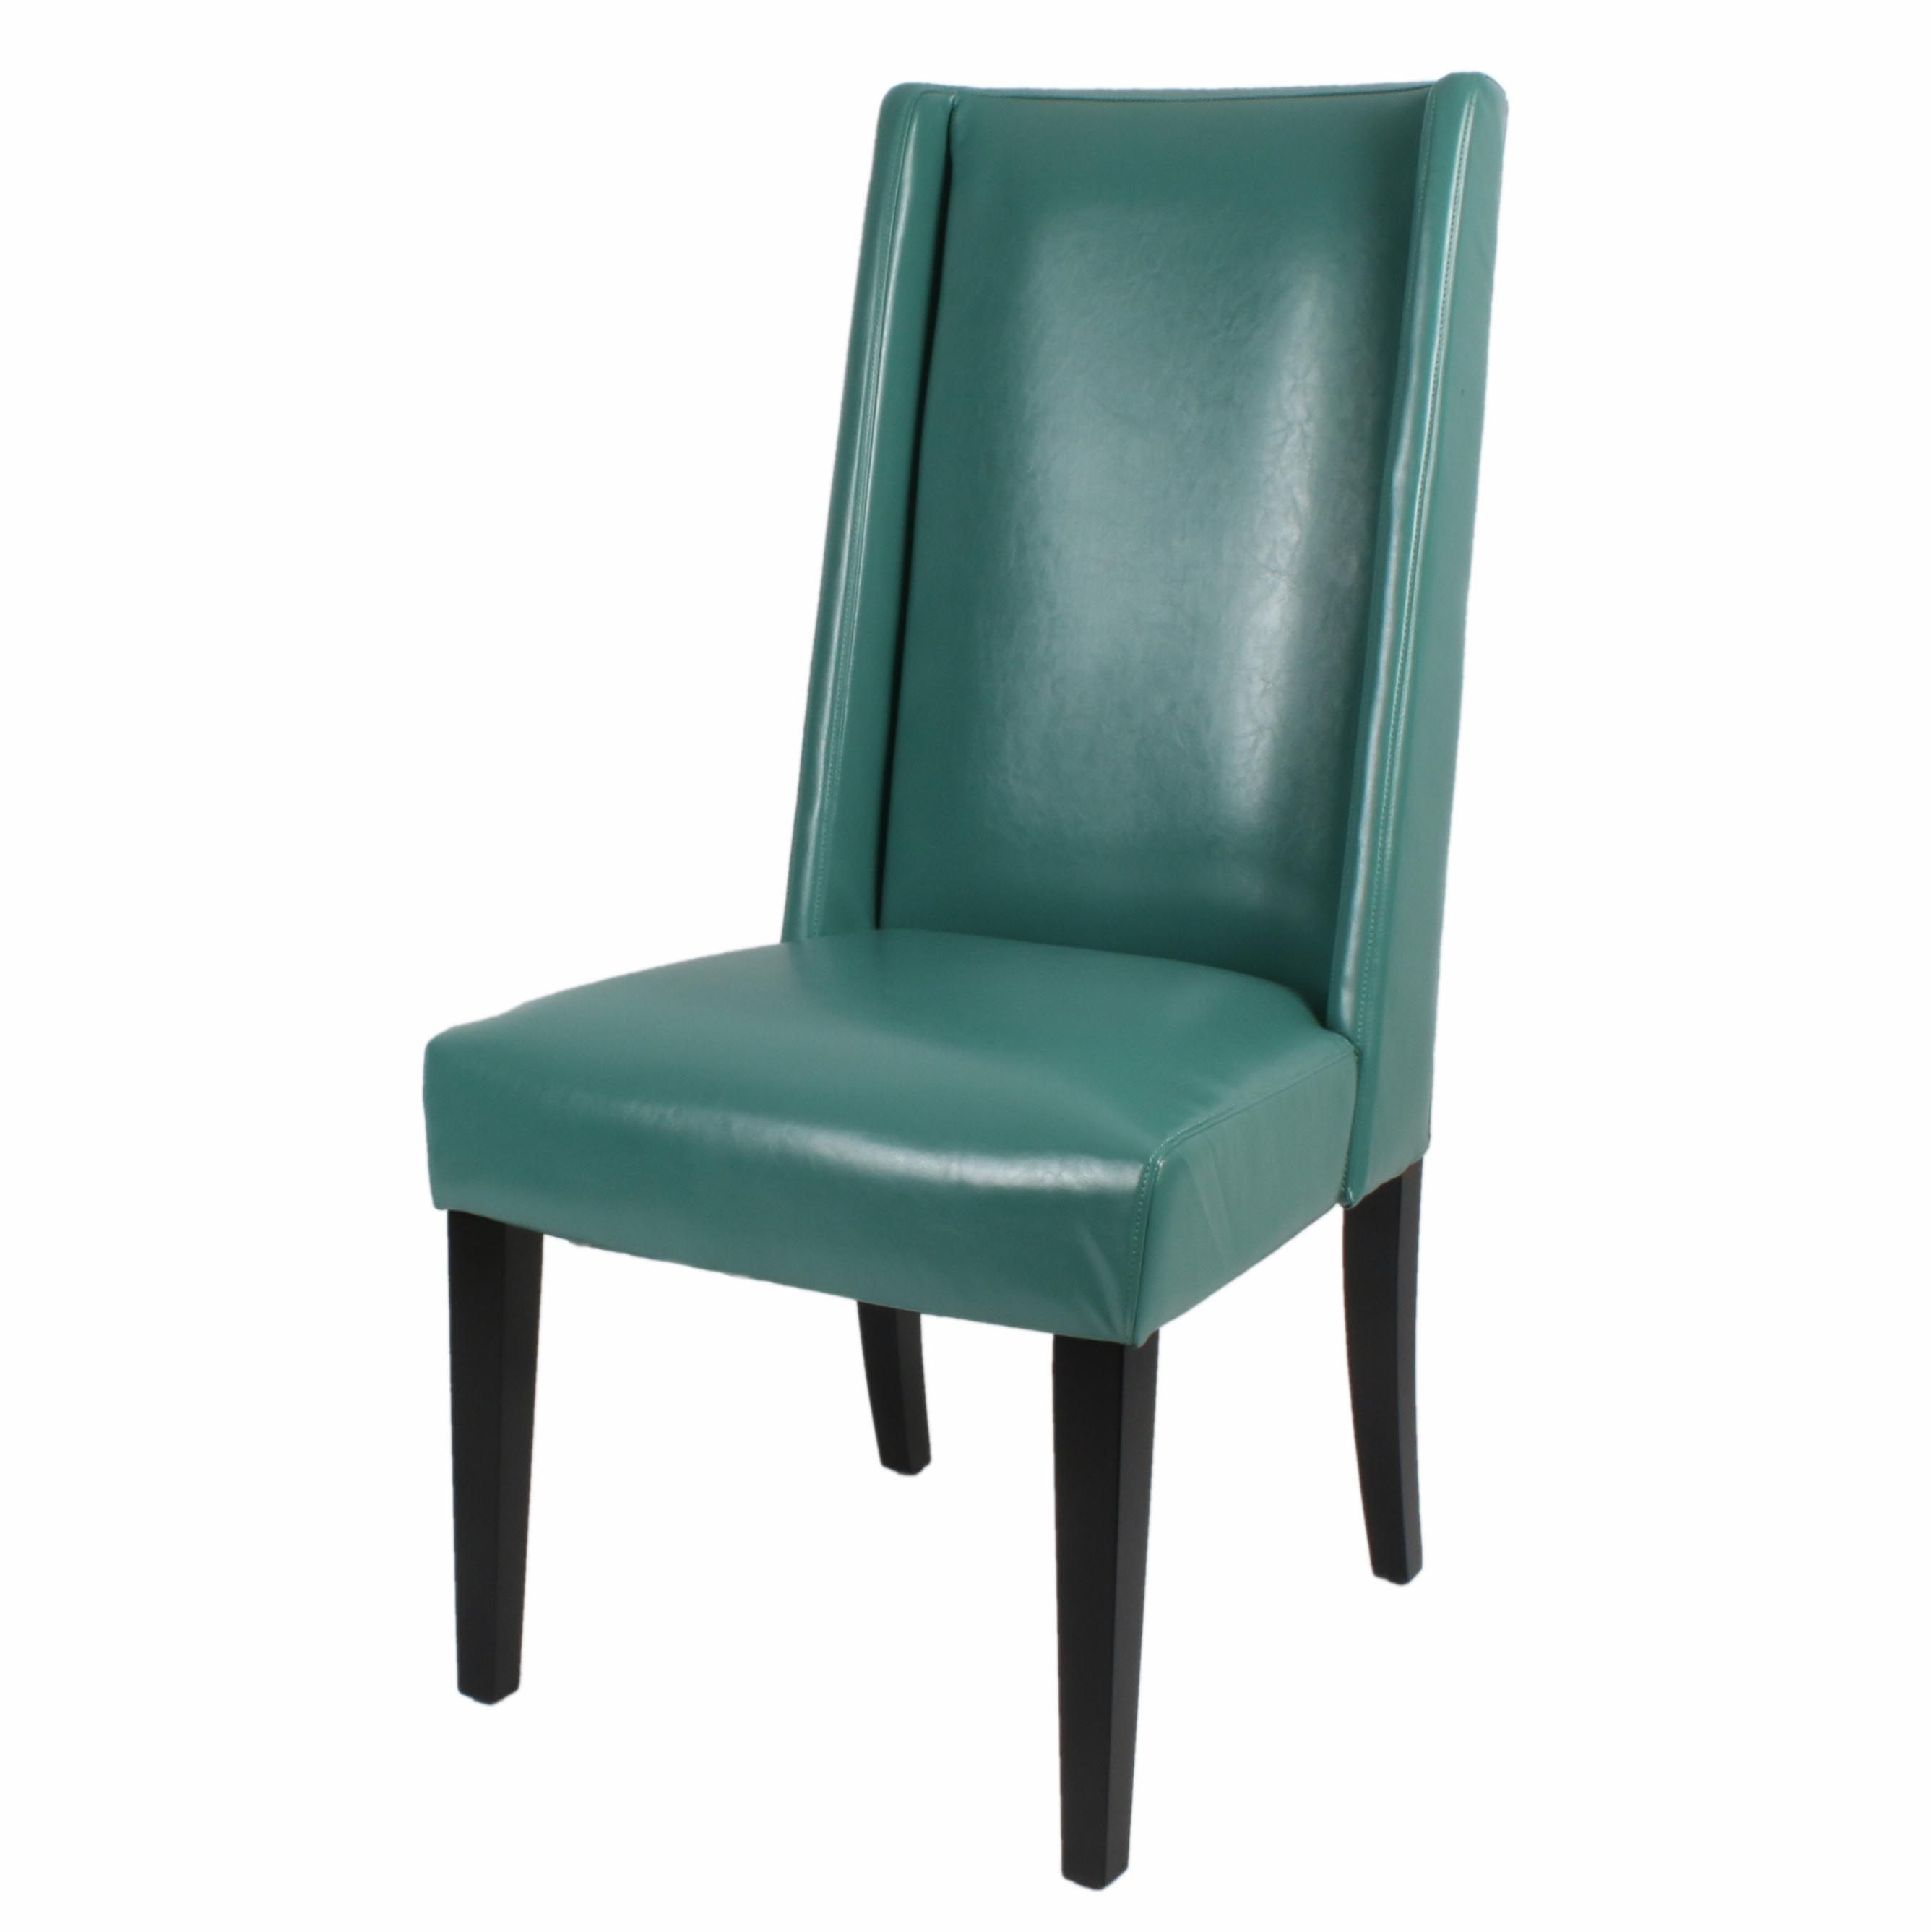 Four In Stock Lucca Turquoise Dining Chair 22 00 W 27 00 D 44 50 H Rent 17 Buy 119 Chair Side Chairs Turquoise Dining Chairs